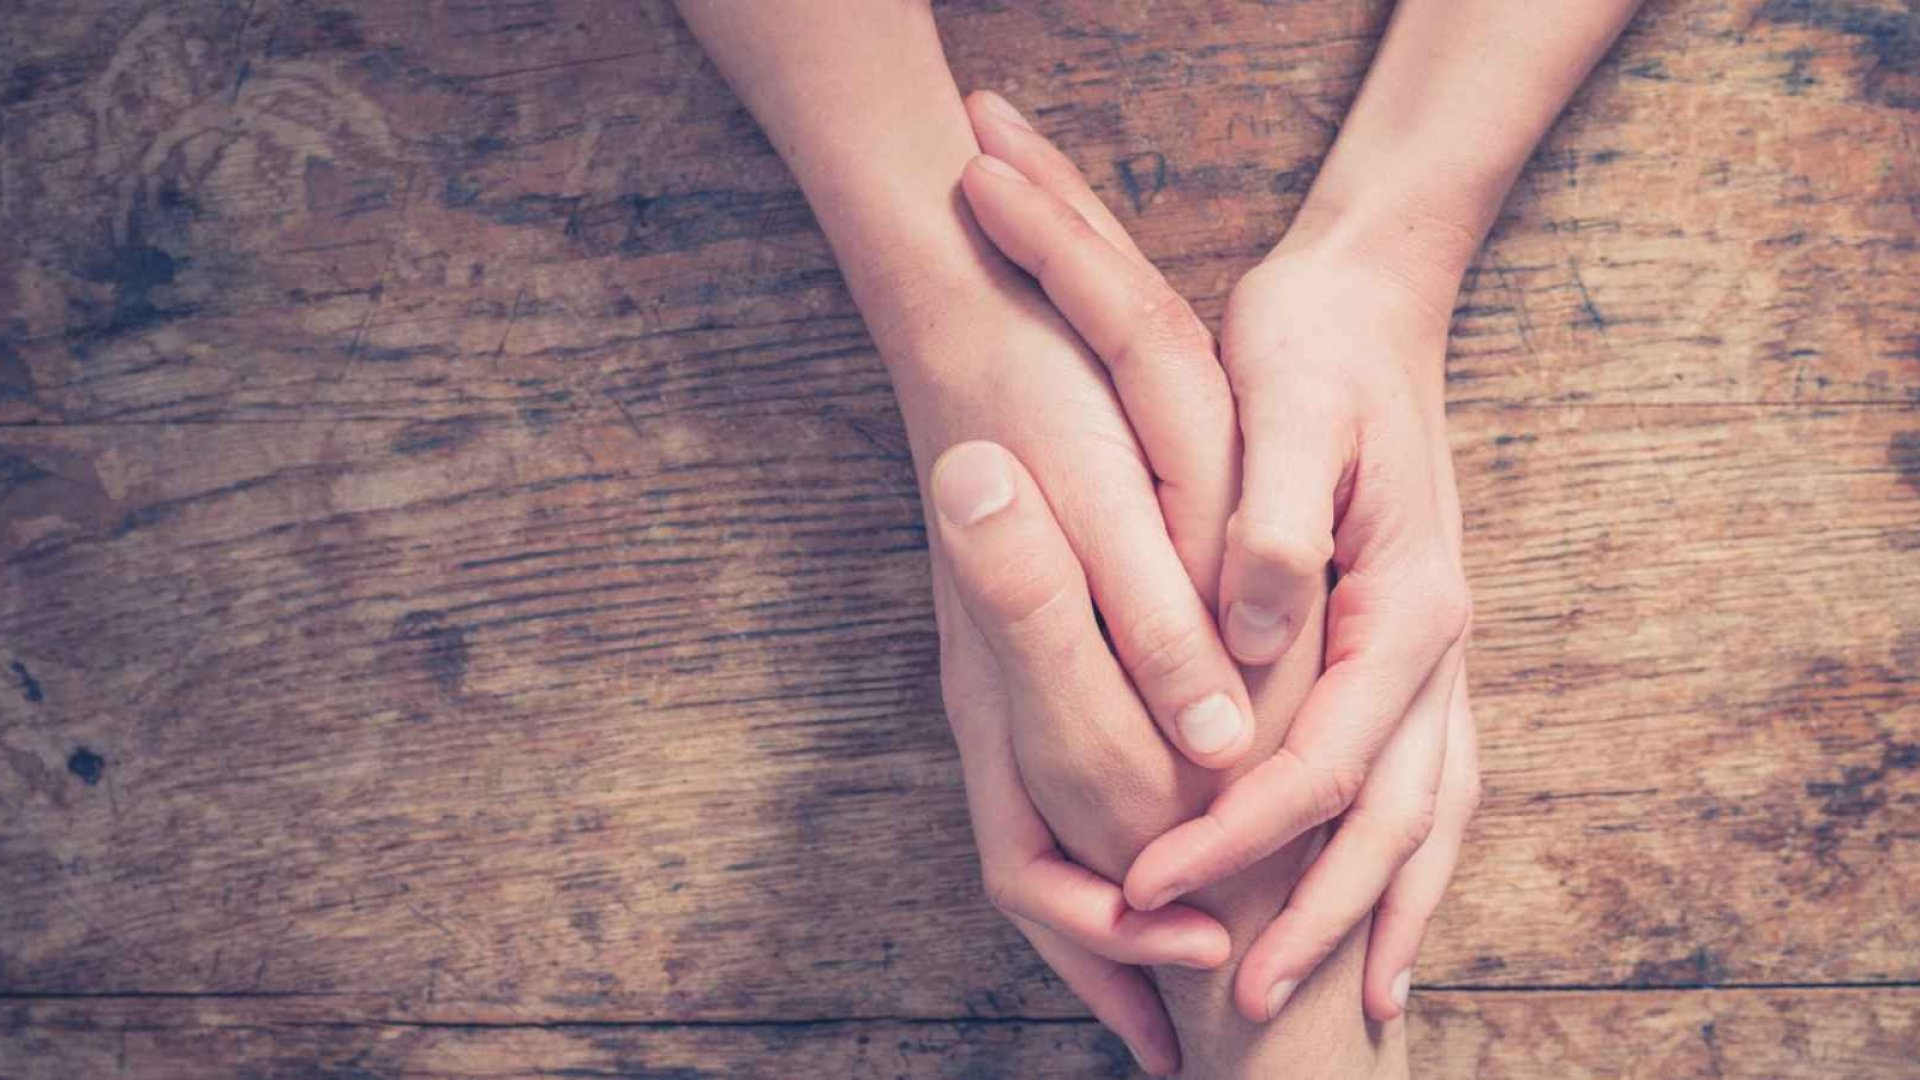 5 Ways to Build a Culture of Caring